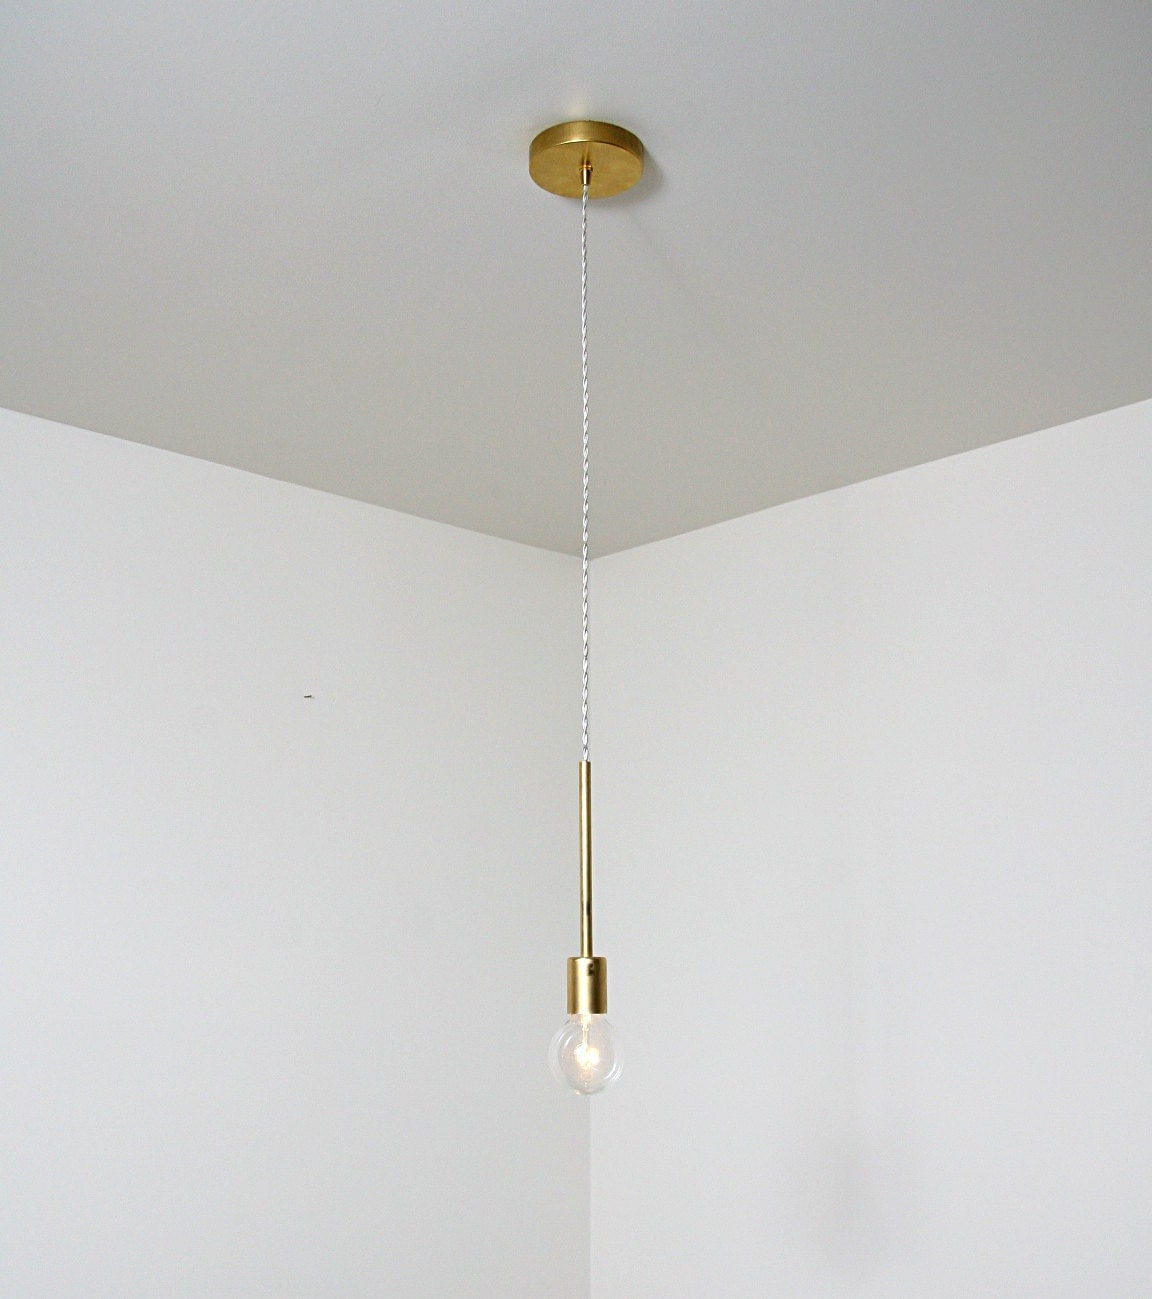 Unique Handmade Brass Single Pendant Light Fixture By